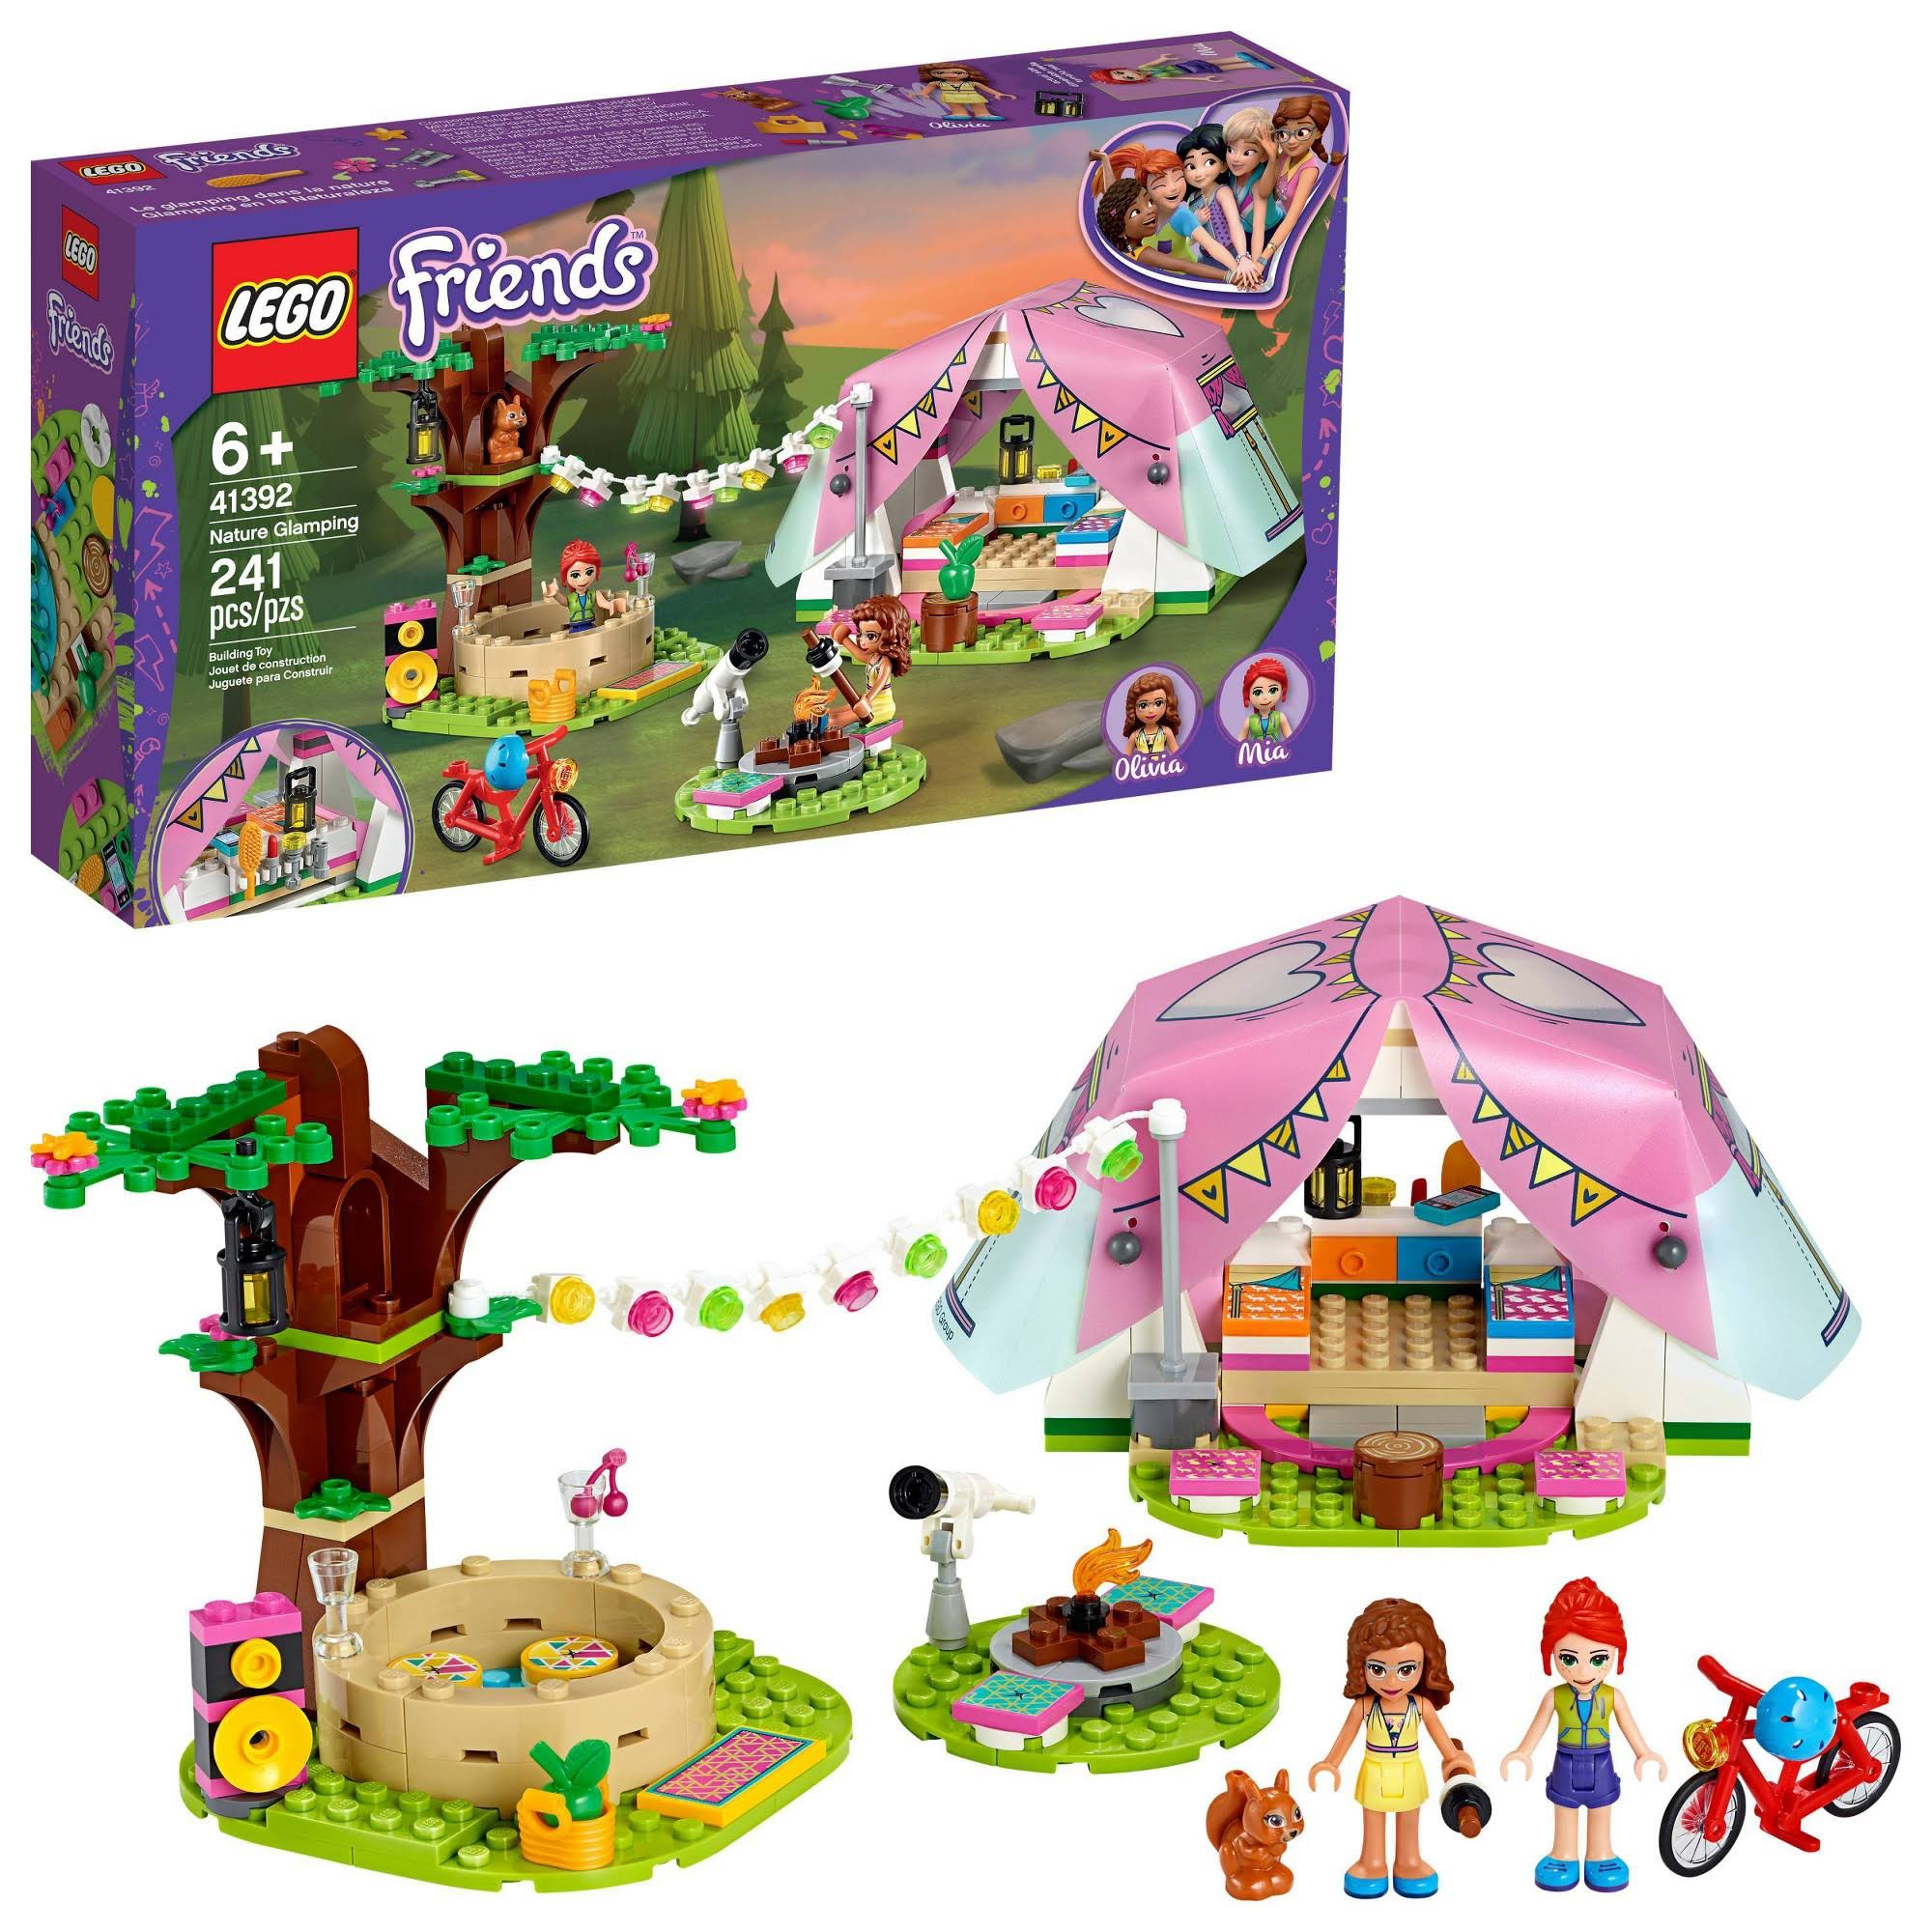 Lego Friends - Nature Glamping 41392